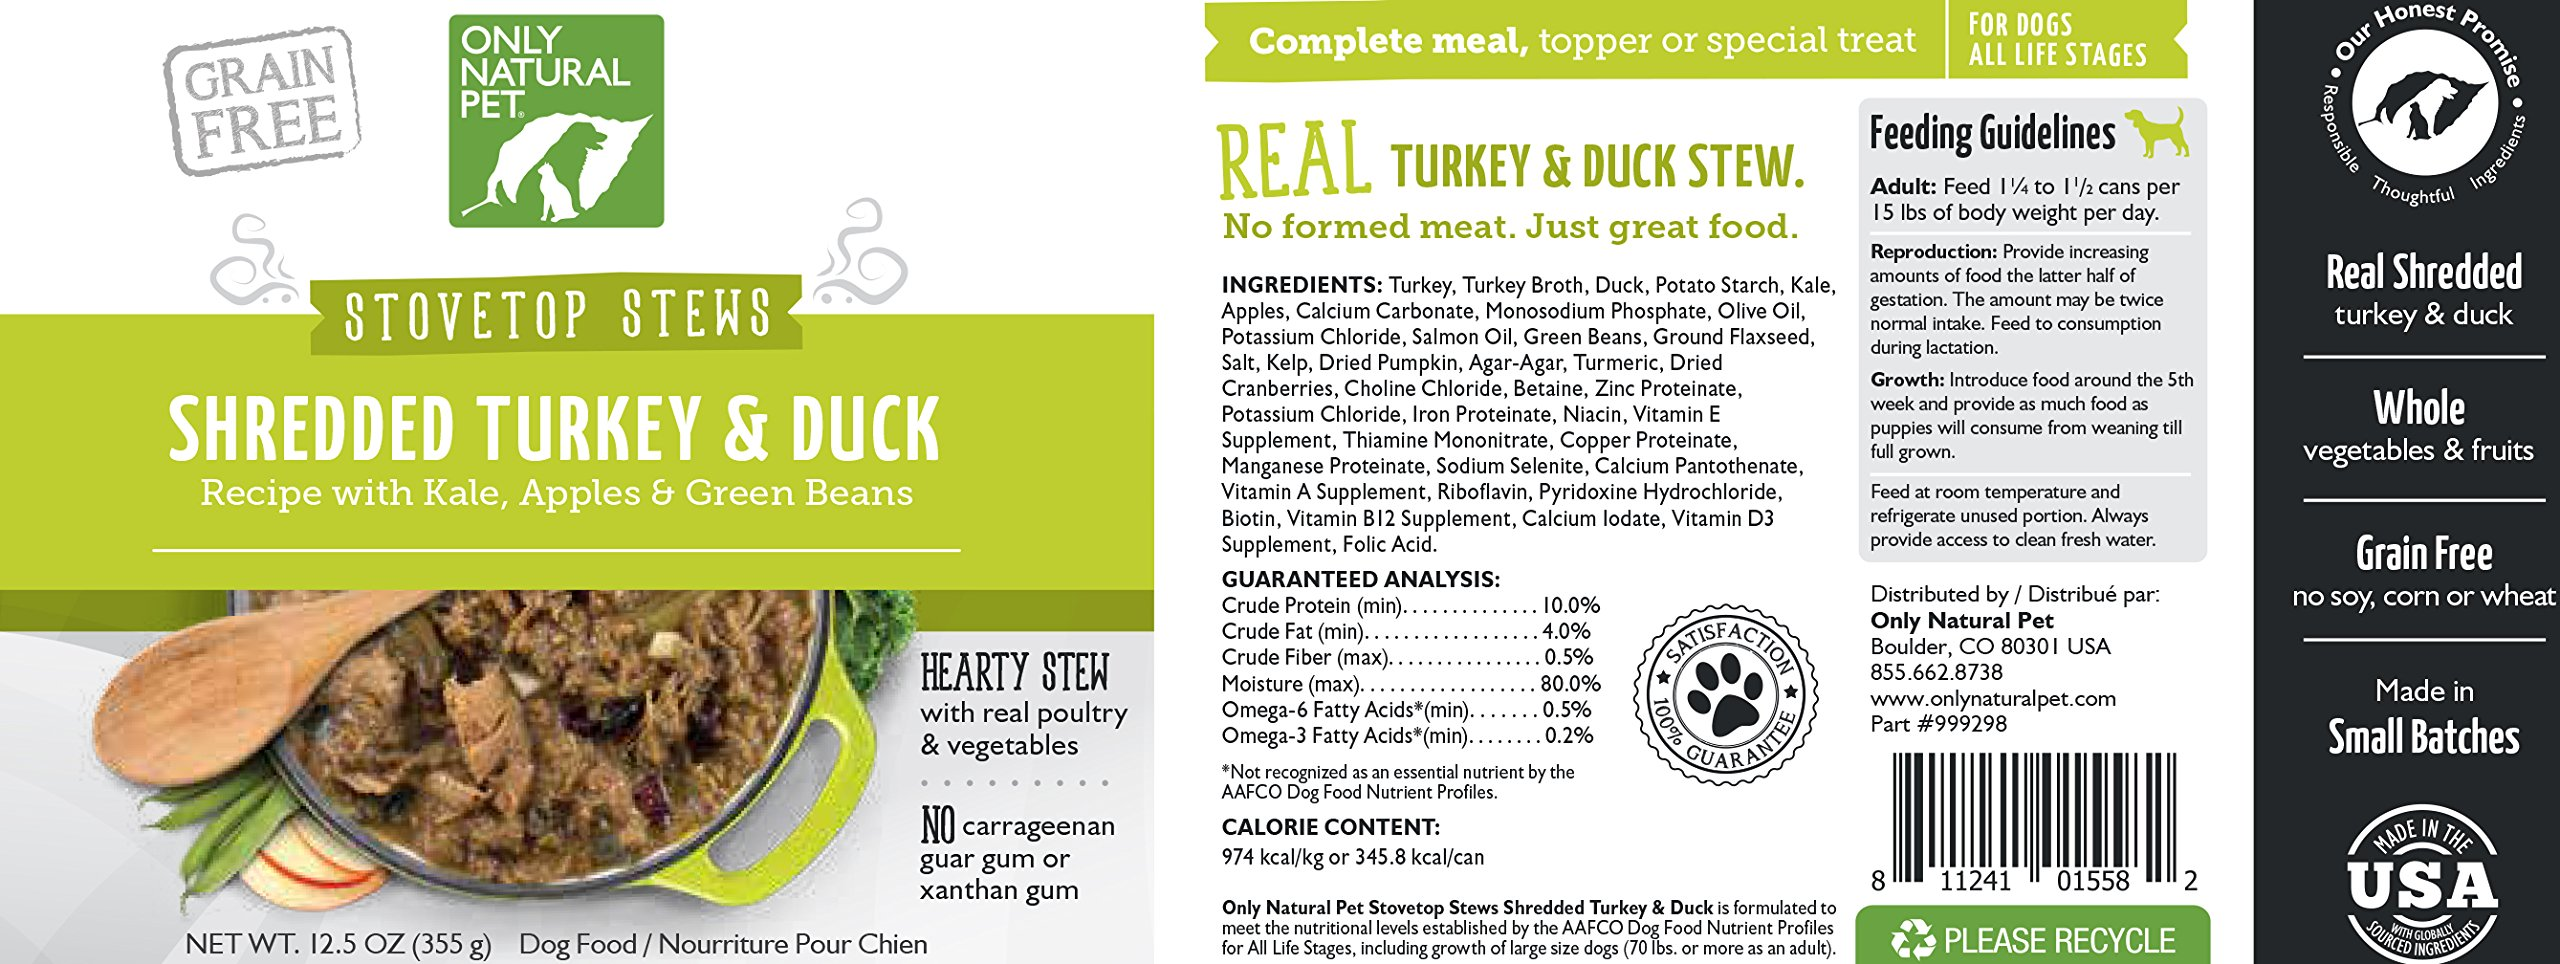 Only Natural Pet Stovetop Stews Grain-Free, Premium Wet Canned Dog Food, Shredded Turkey & Duck Stew 12.5 oz Cans (Pack of 12) by Only Natural Pet (Image #4)